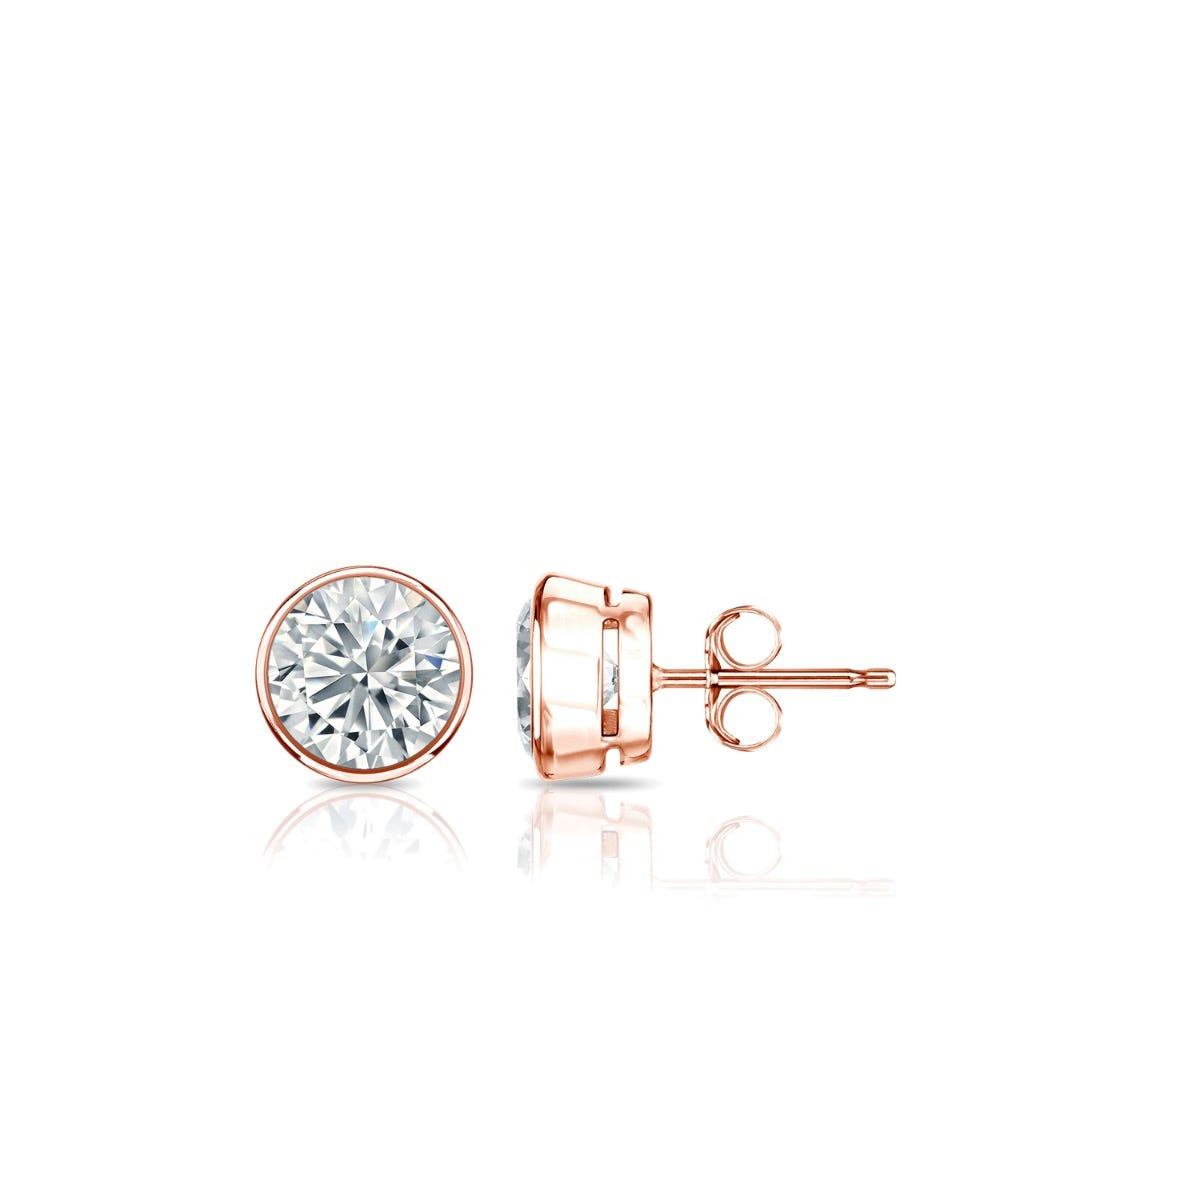 Diamond Round Bezel-Set 3/8ctw. Solitaire Stud (IJ-SI1) Earrings in 14K Rose Gold